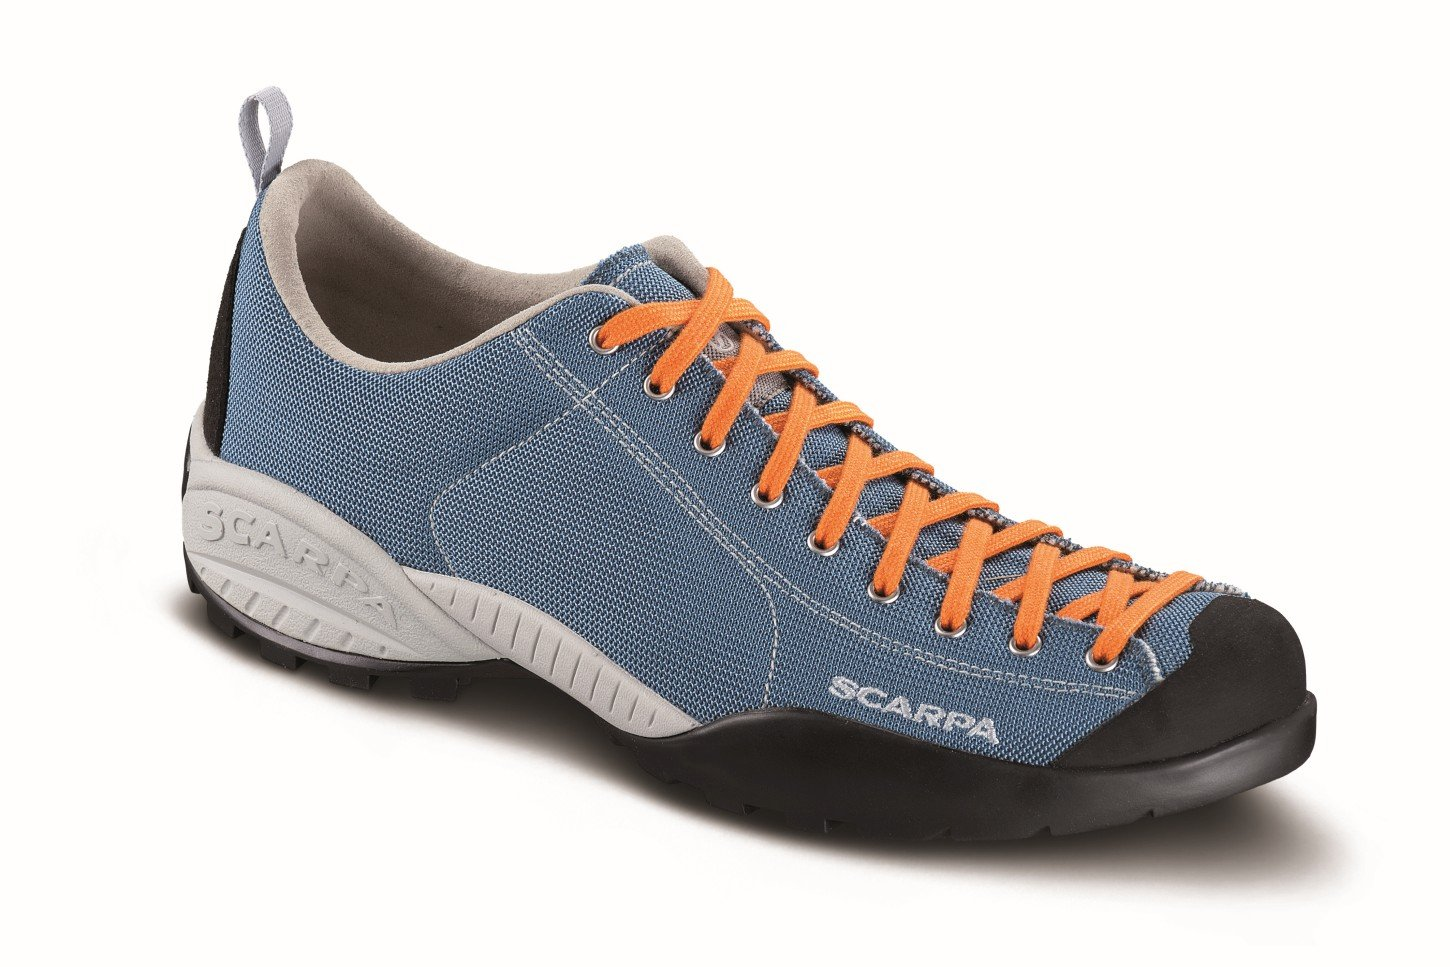 Scarpa Schuhe Mojito Fresh  EU 43,5|ocean/orange pop